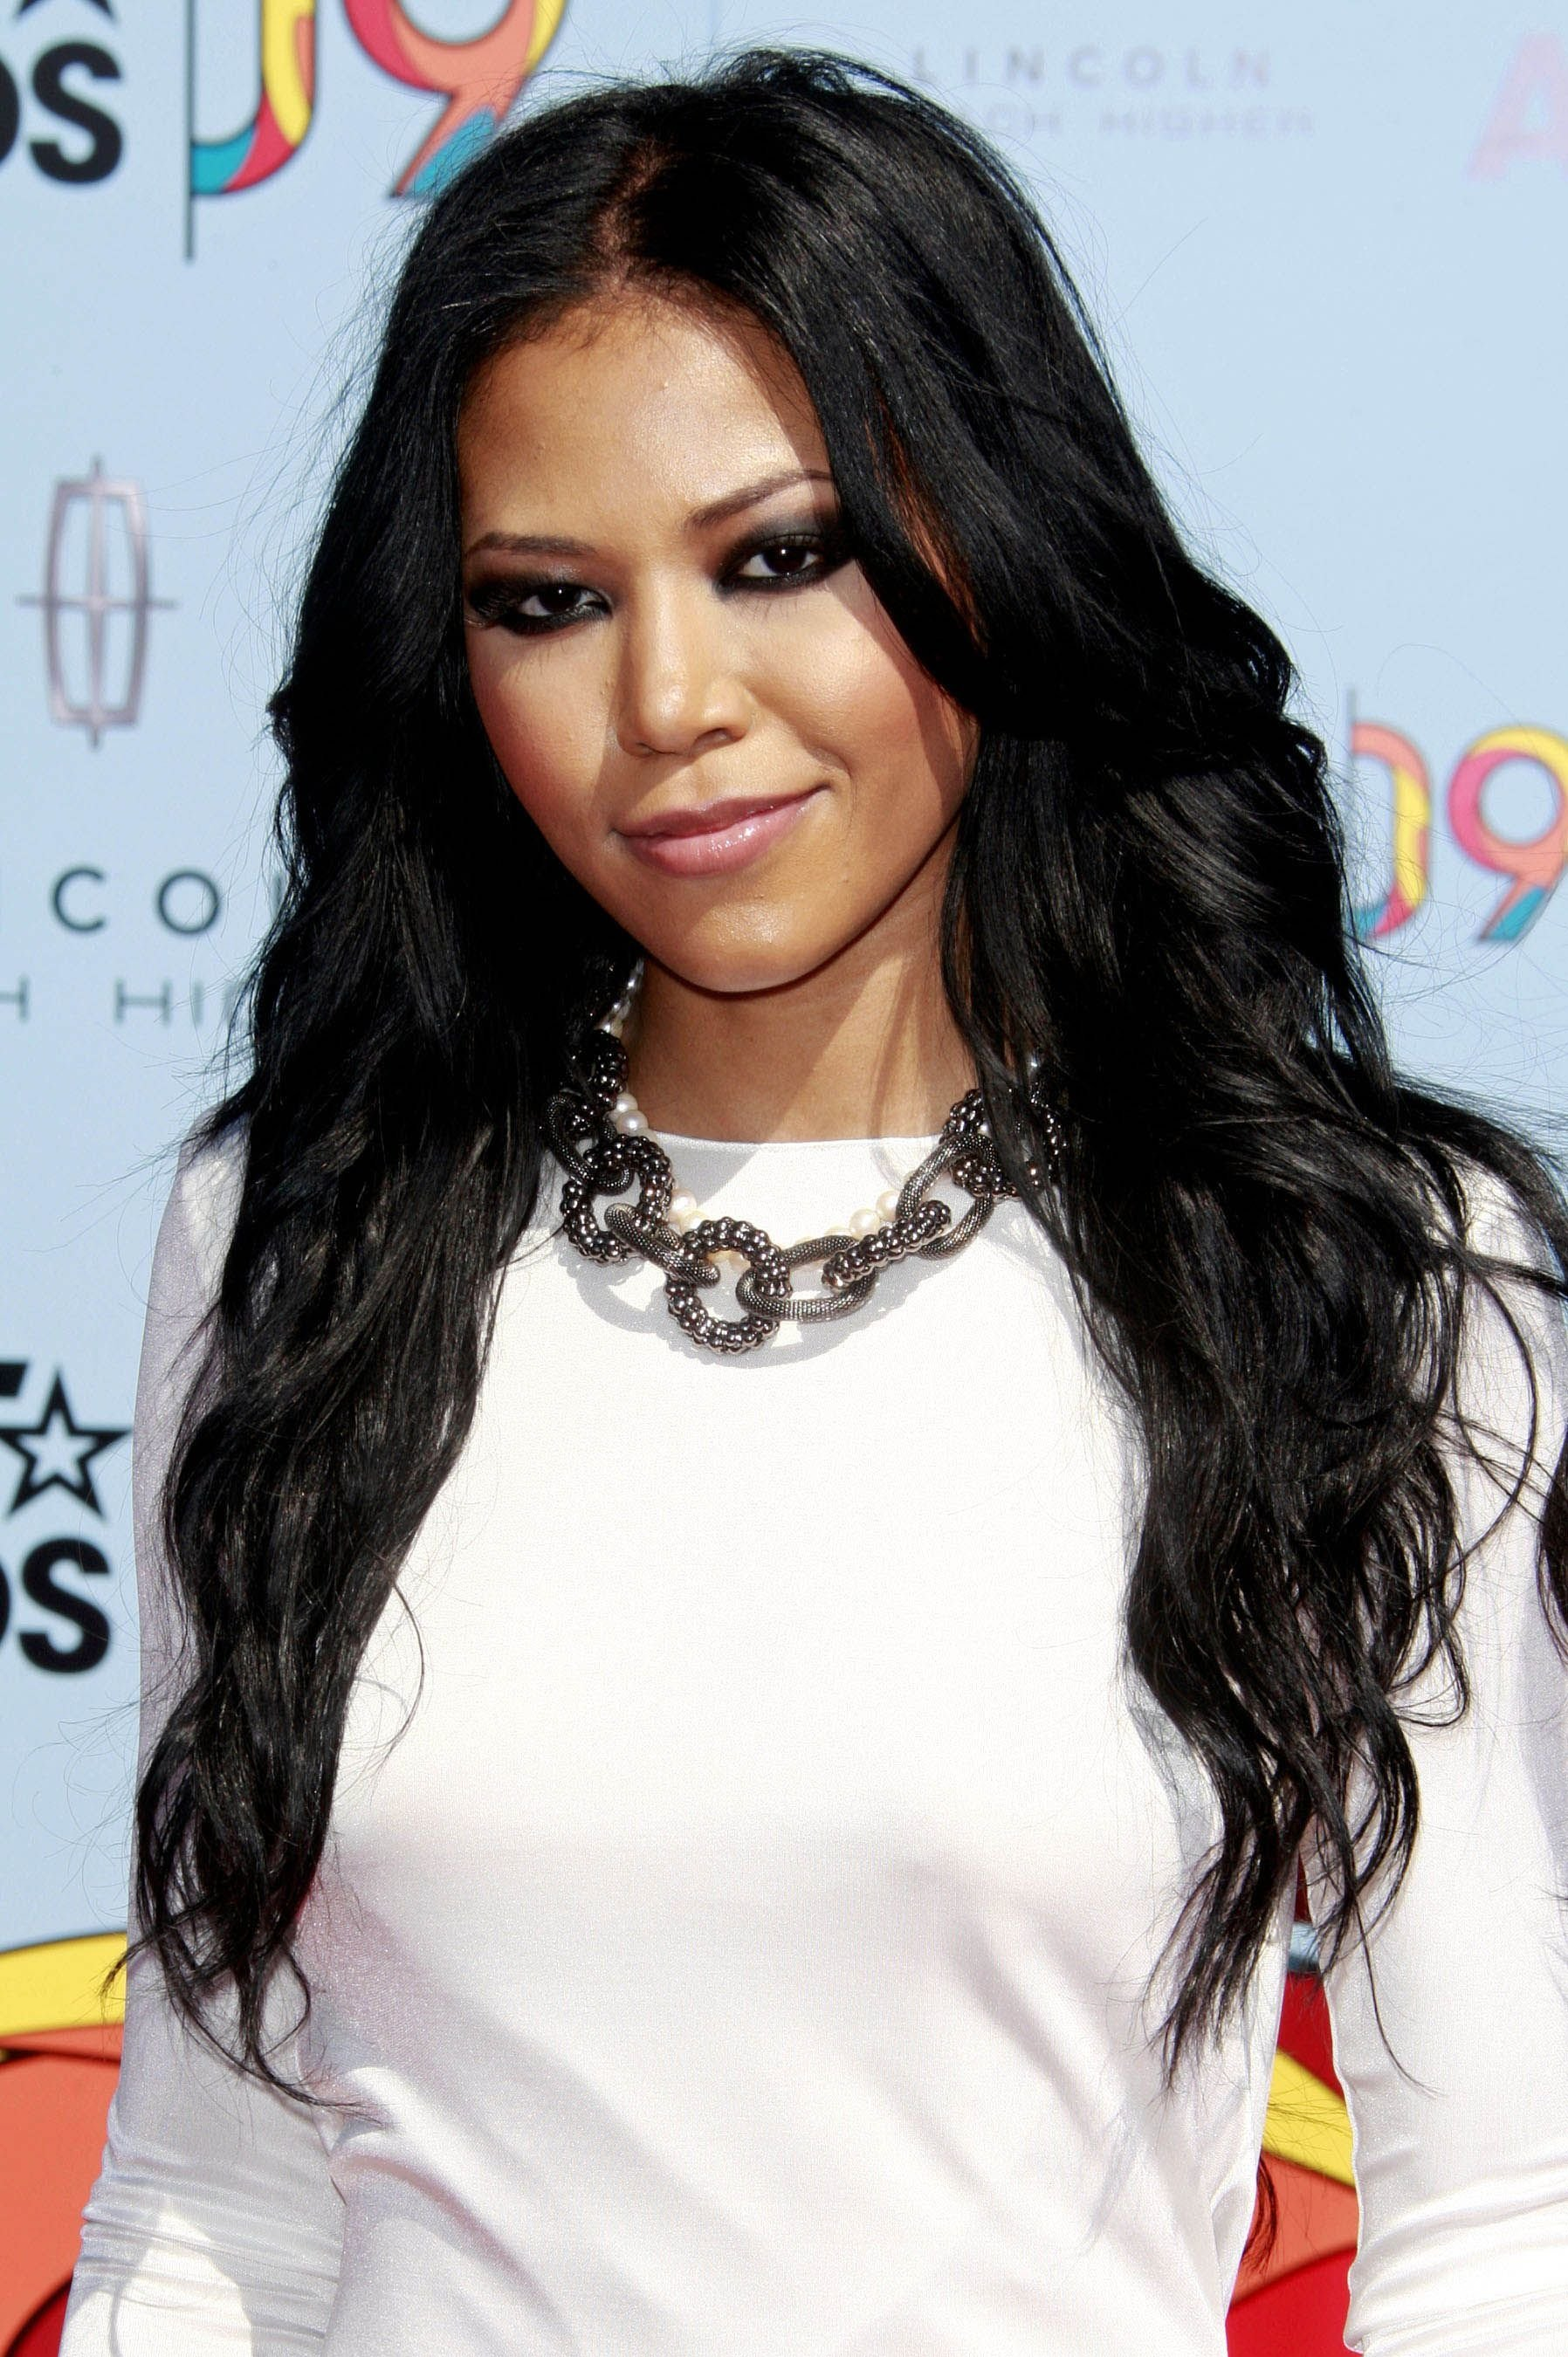 The Best Amerie Looks Gorg With Her Long Loose Curls A Woman S Pictures